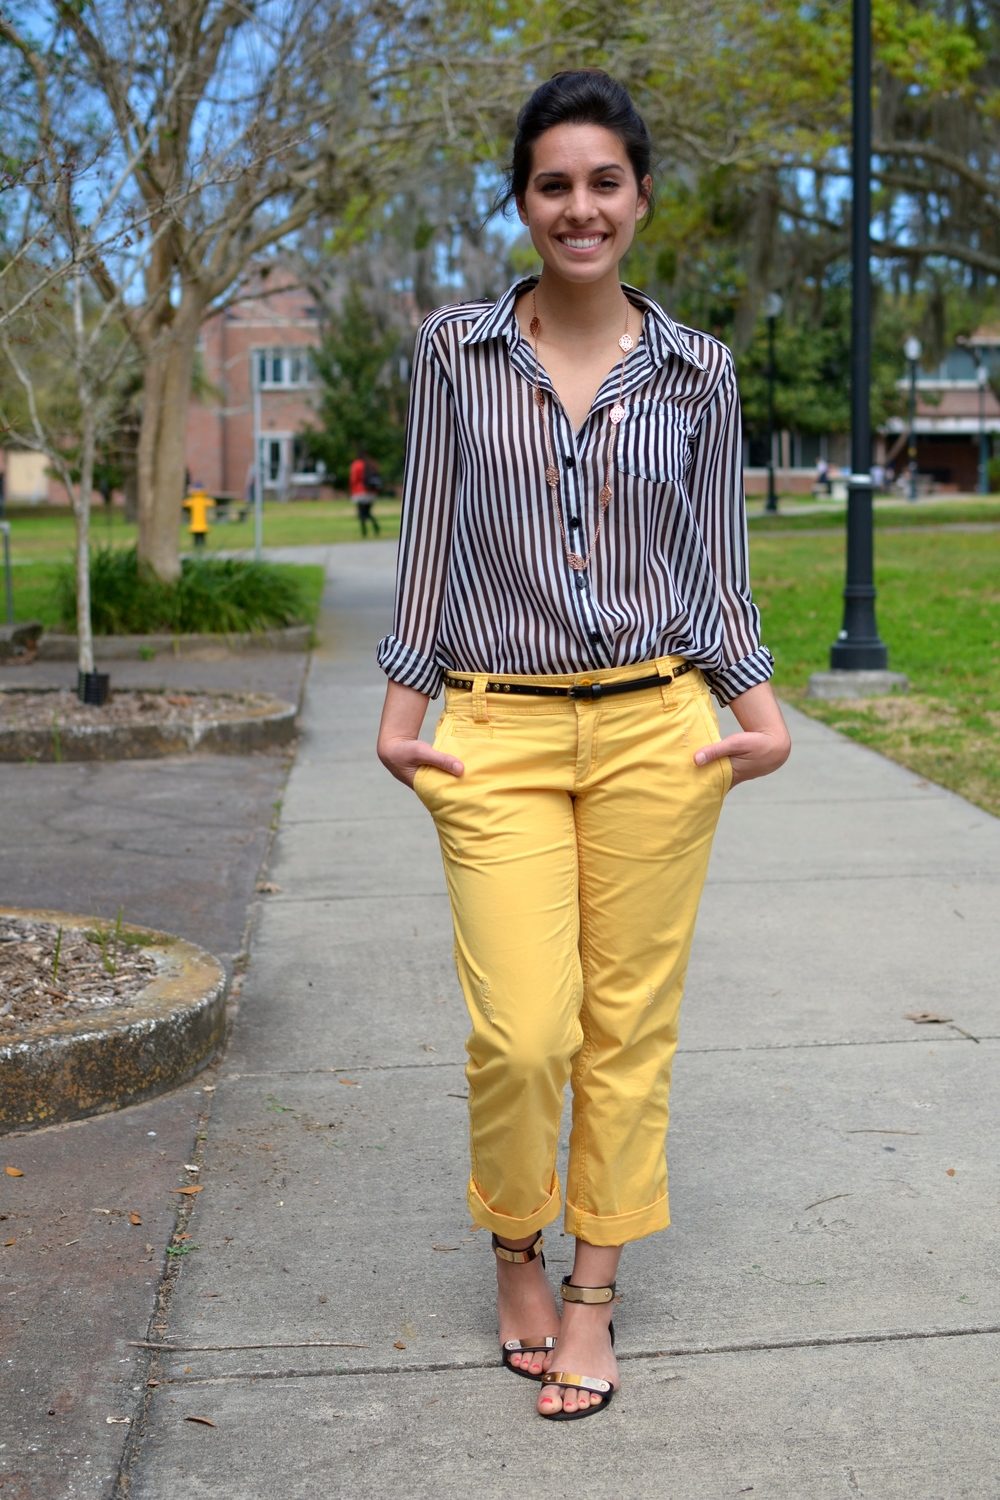 Kelsey is wearing a  Sheer Striped Blouse from Macy's  and a pair of yellow  Piped Khakis from Gap .